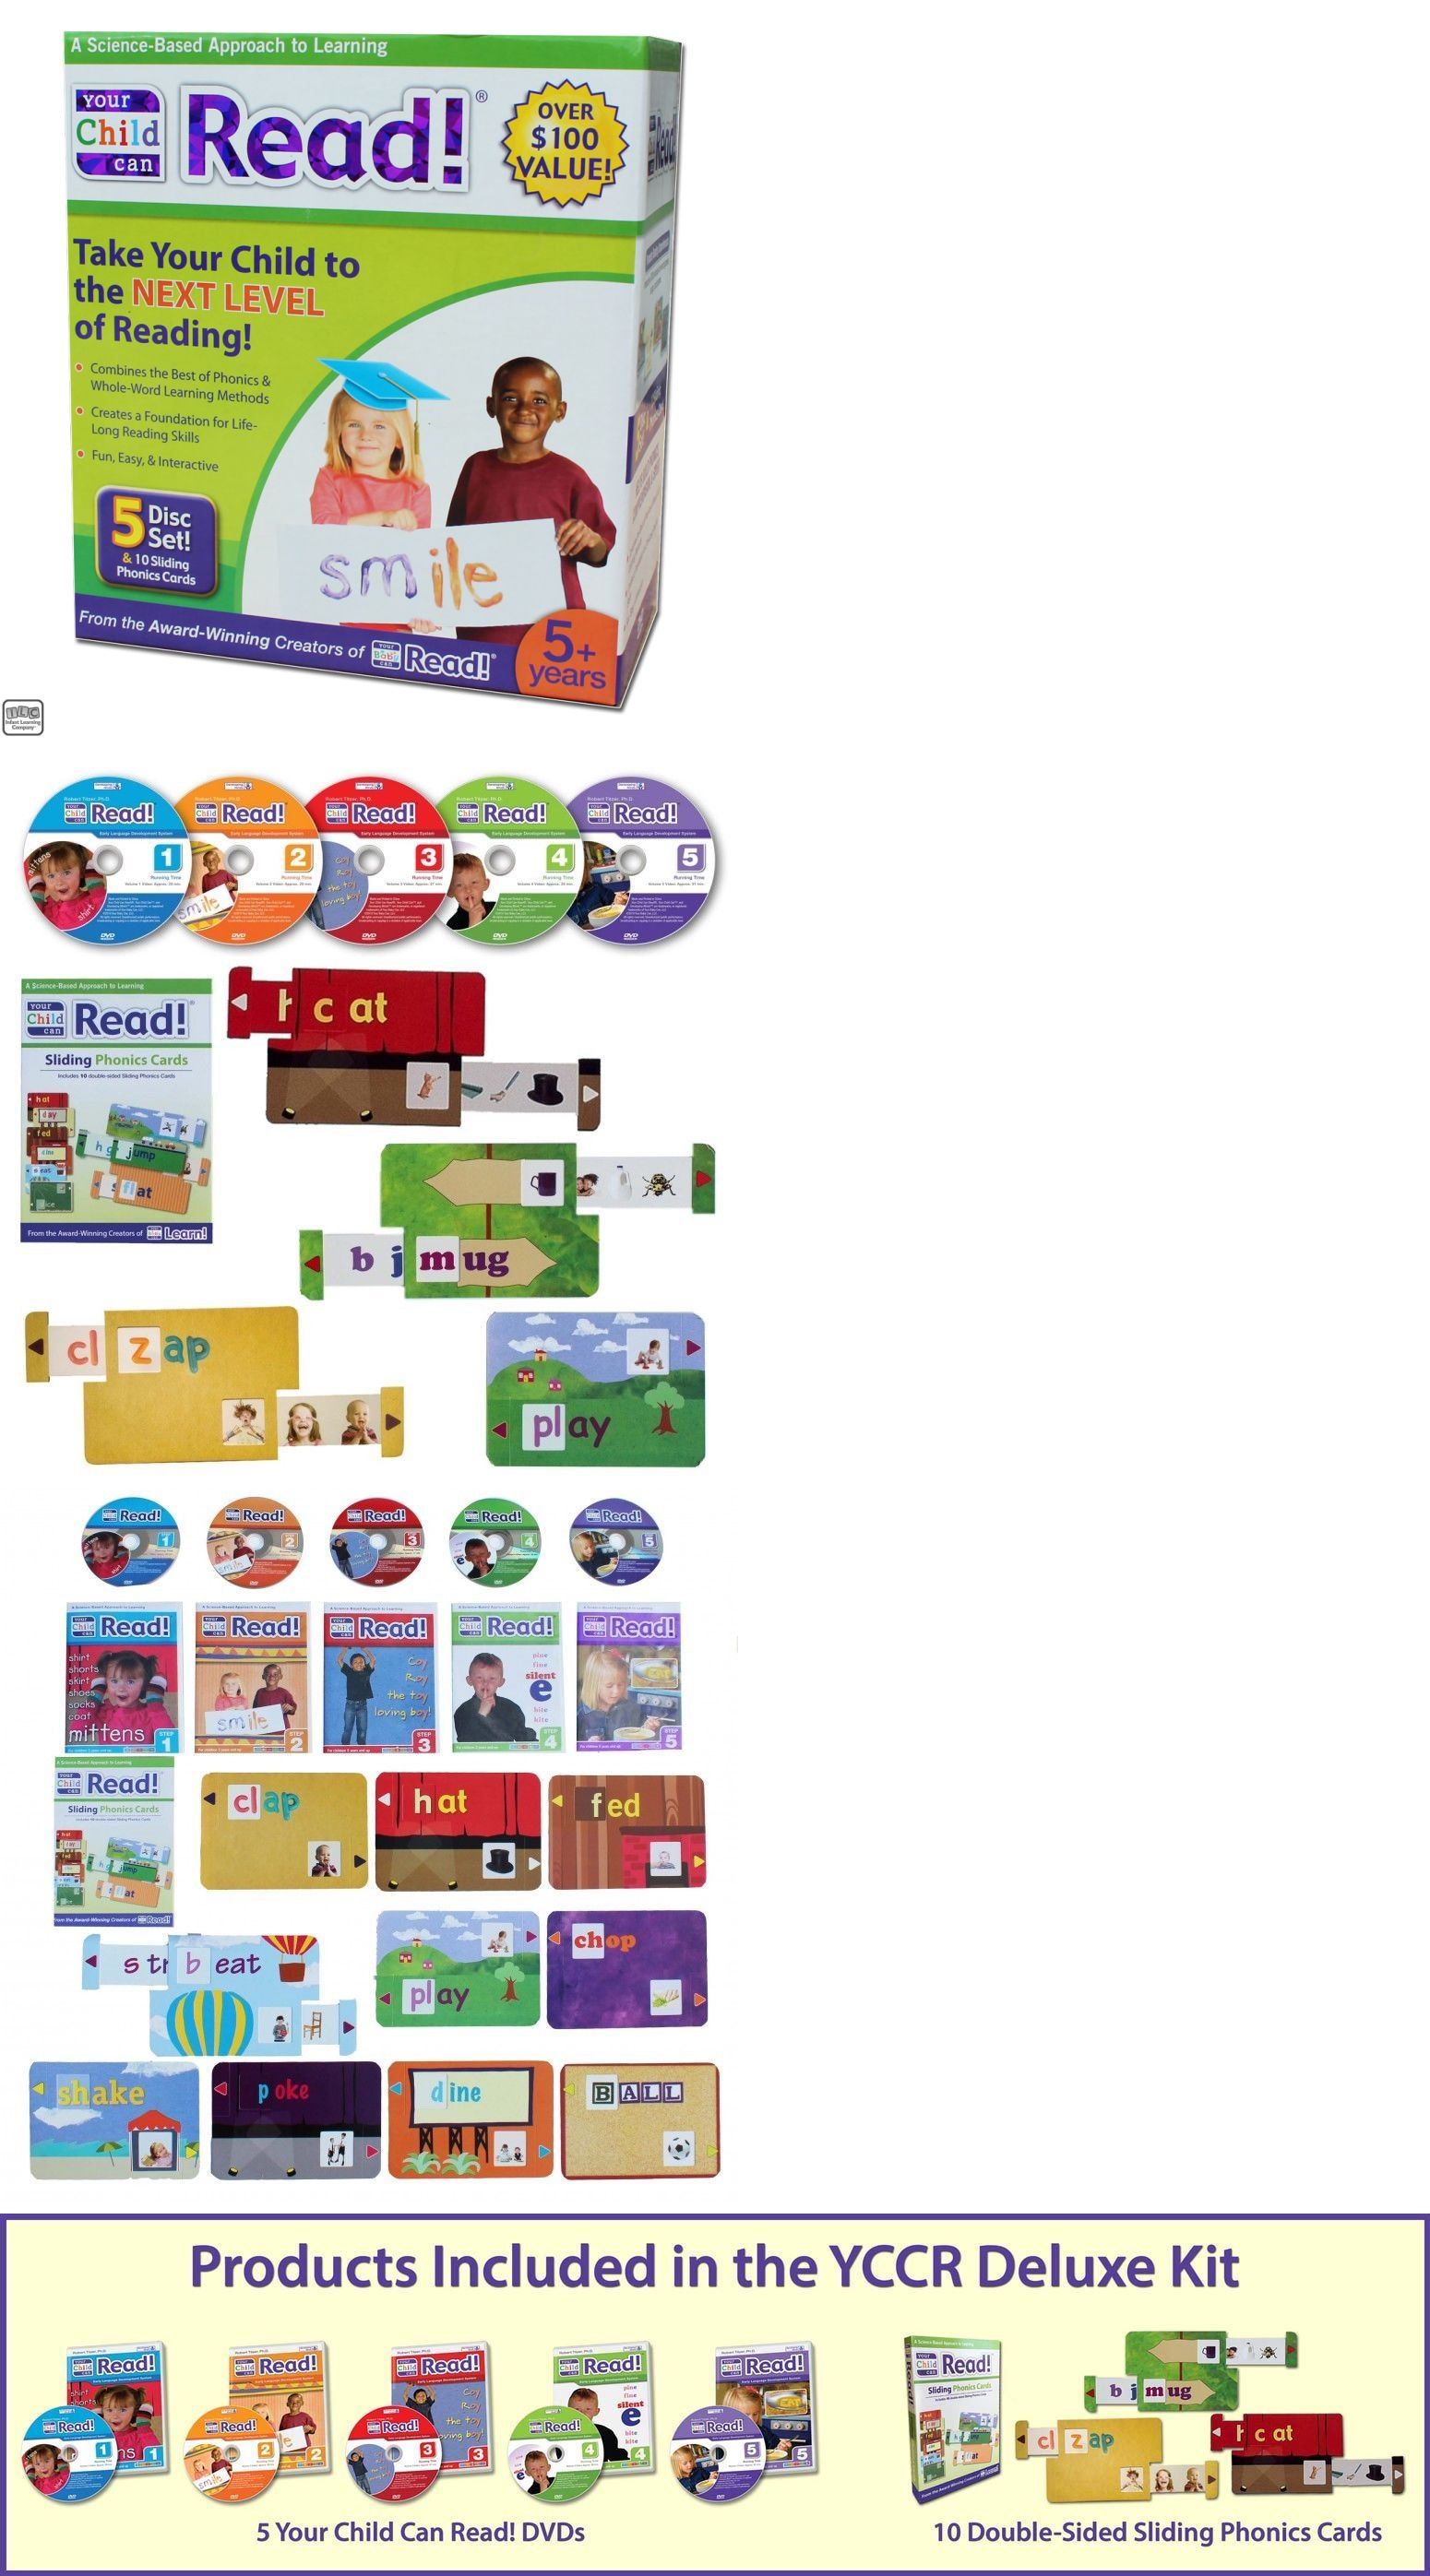 Details about your child can read deluxe kit kids